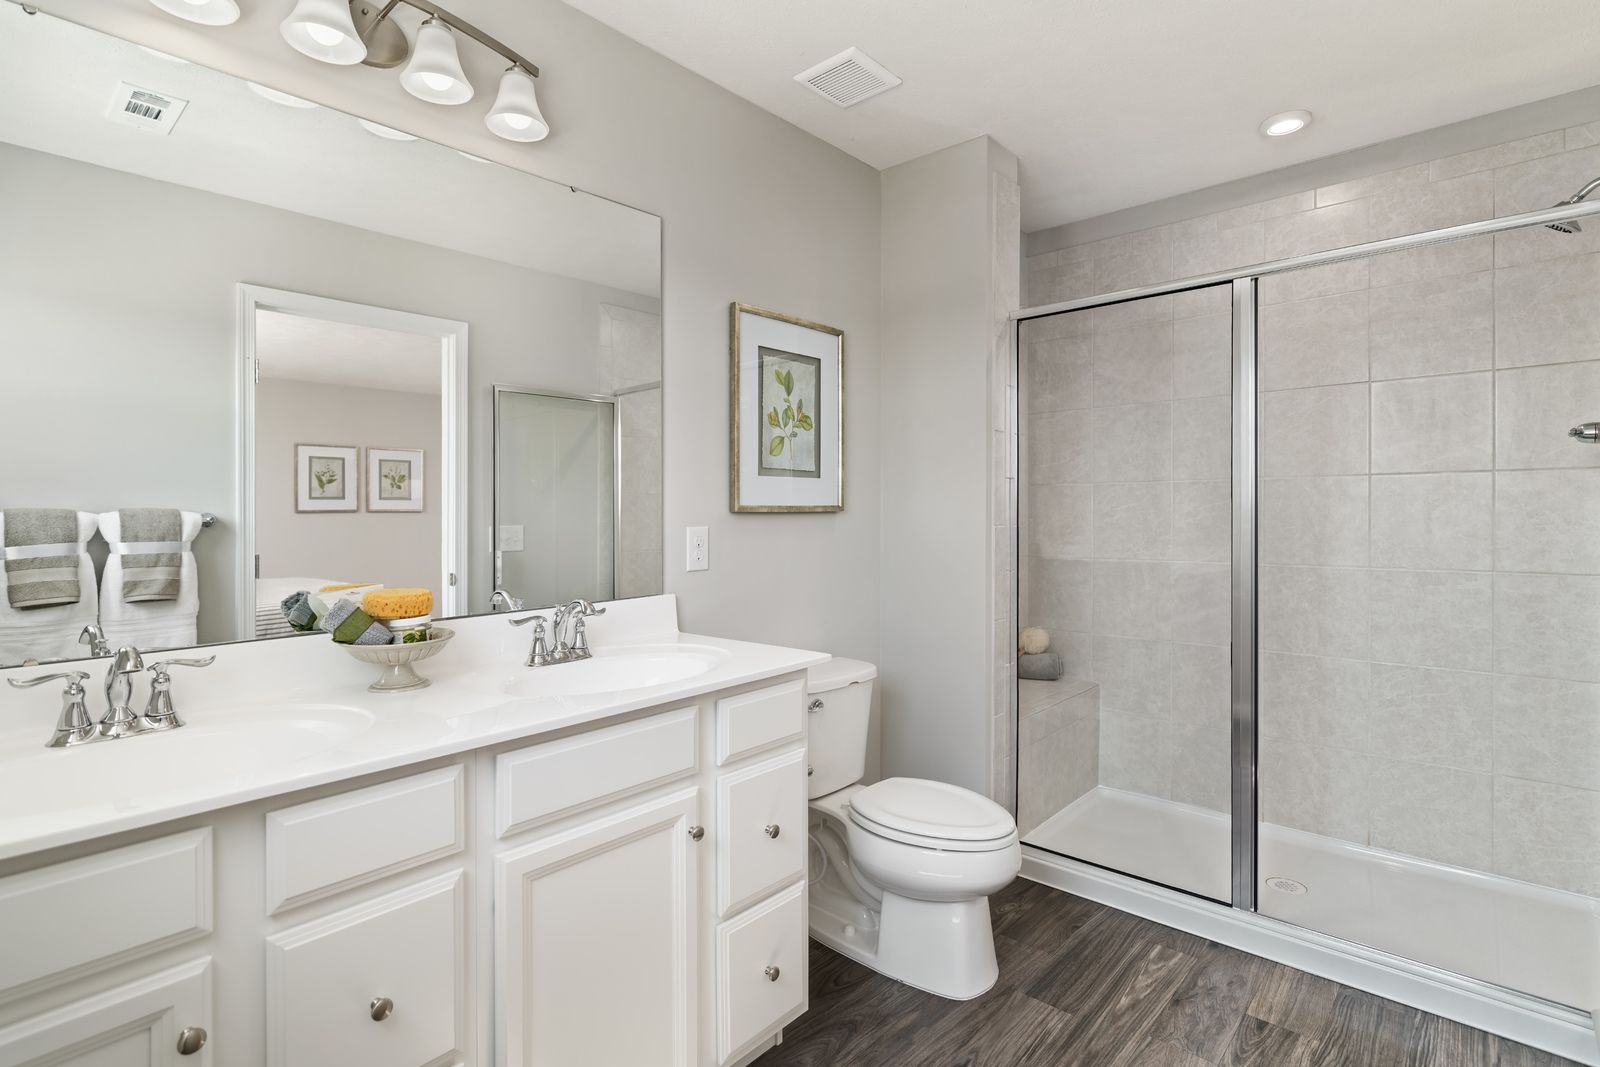 Bathroom featured in the Rosecliff Lux w/ 2' Extension By Ryan Homes in Cleveland, OH